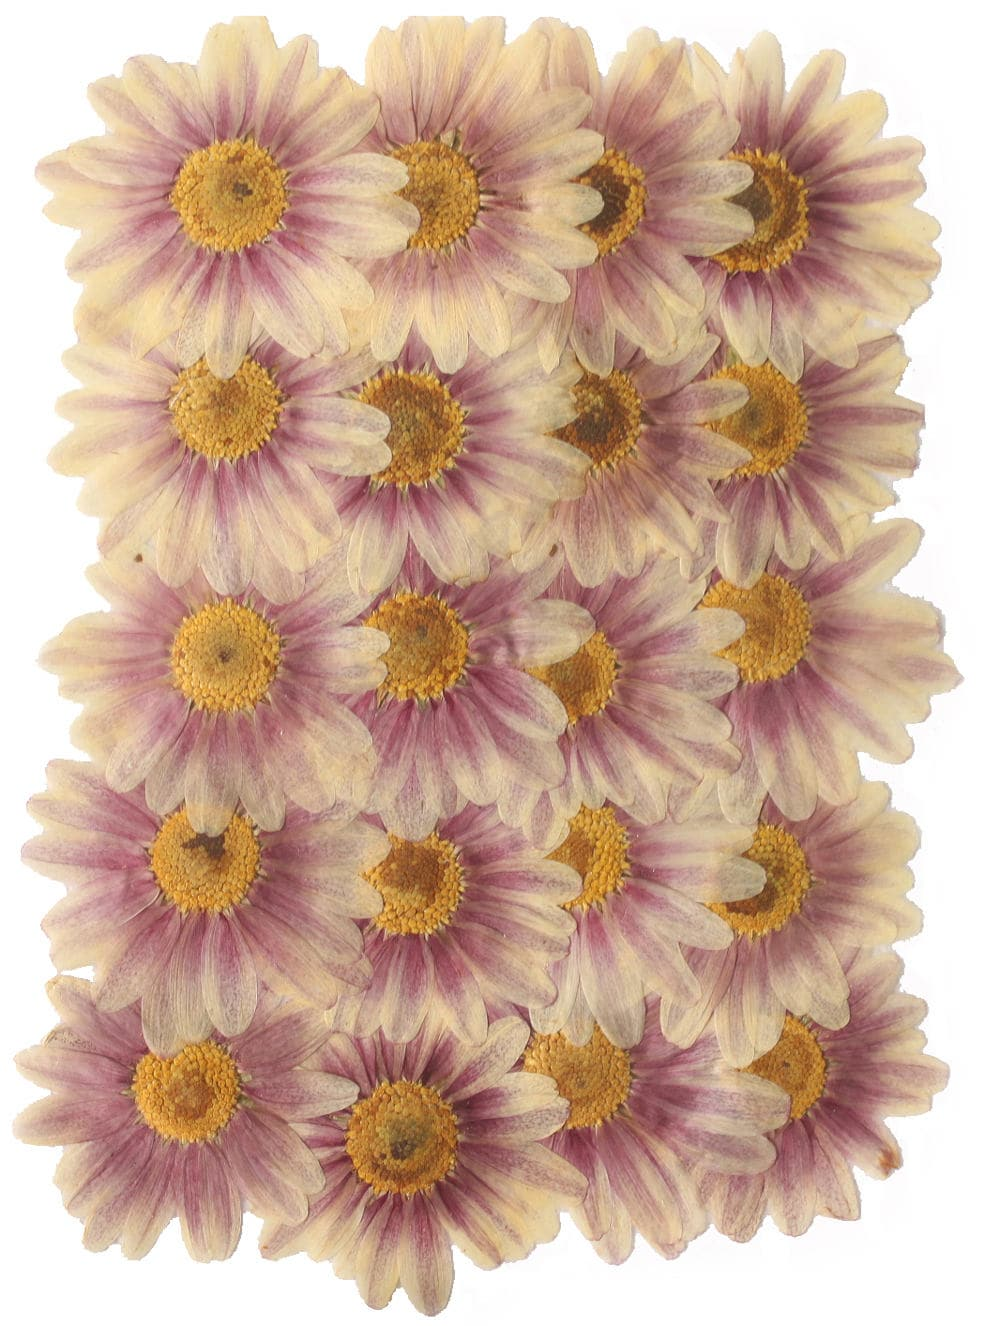 Pressed Flowers Large Daisy 20pcs For Floral Art Craft Card Etsy